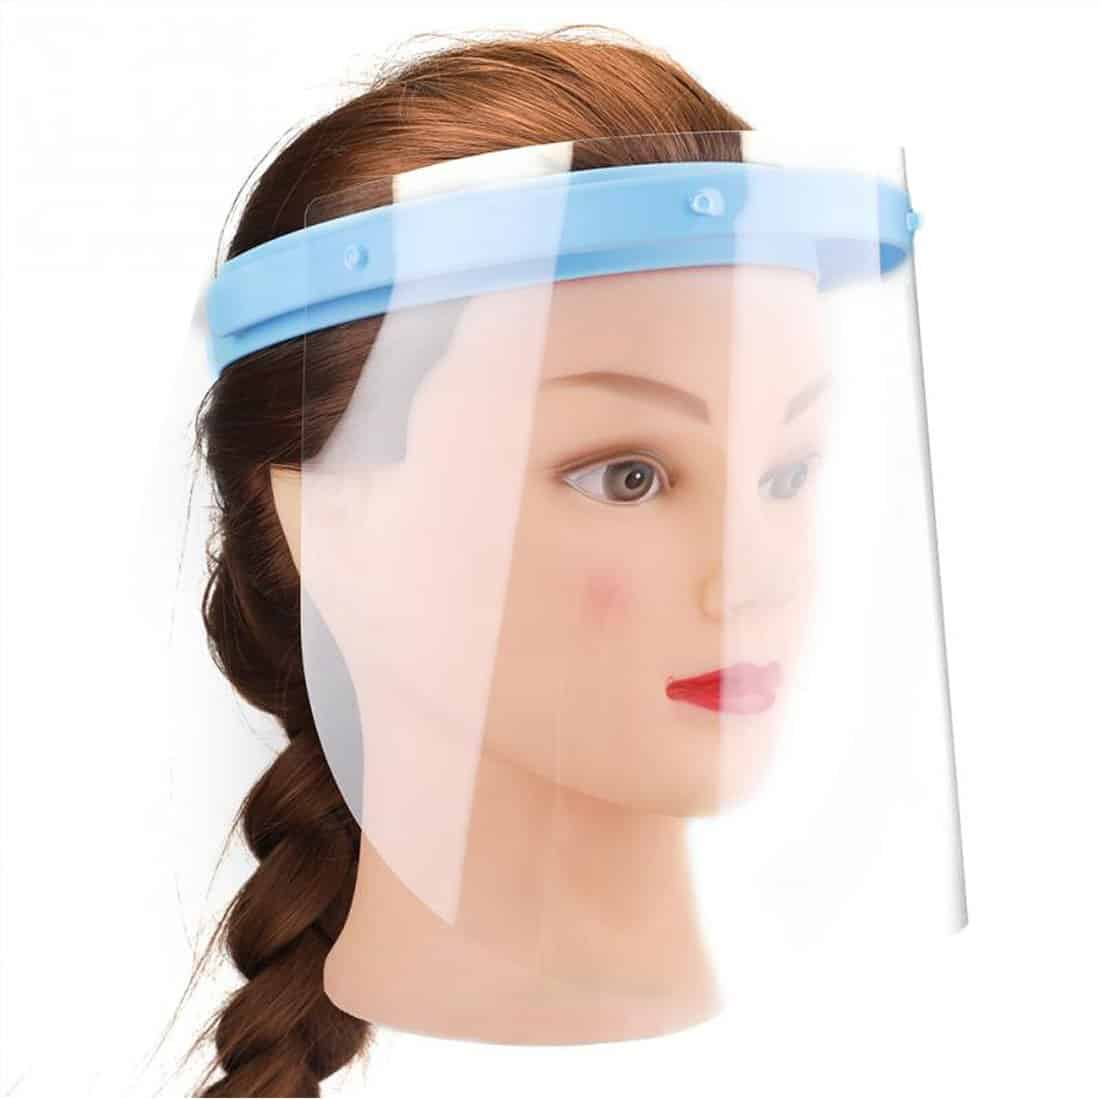 Wecando Anti-fog Adjustable Dental Face Shield